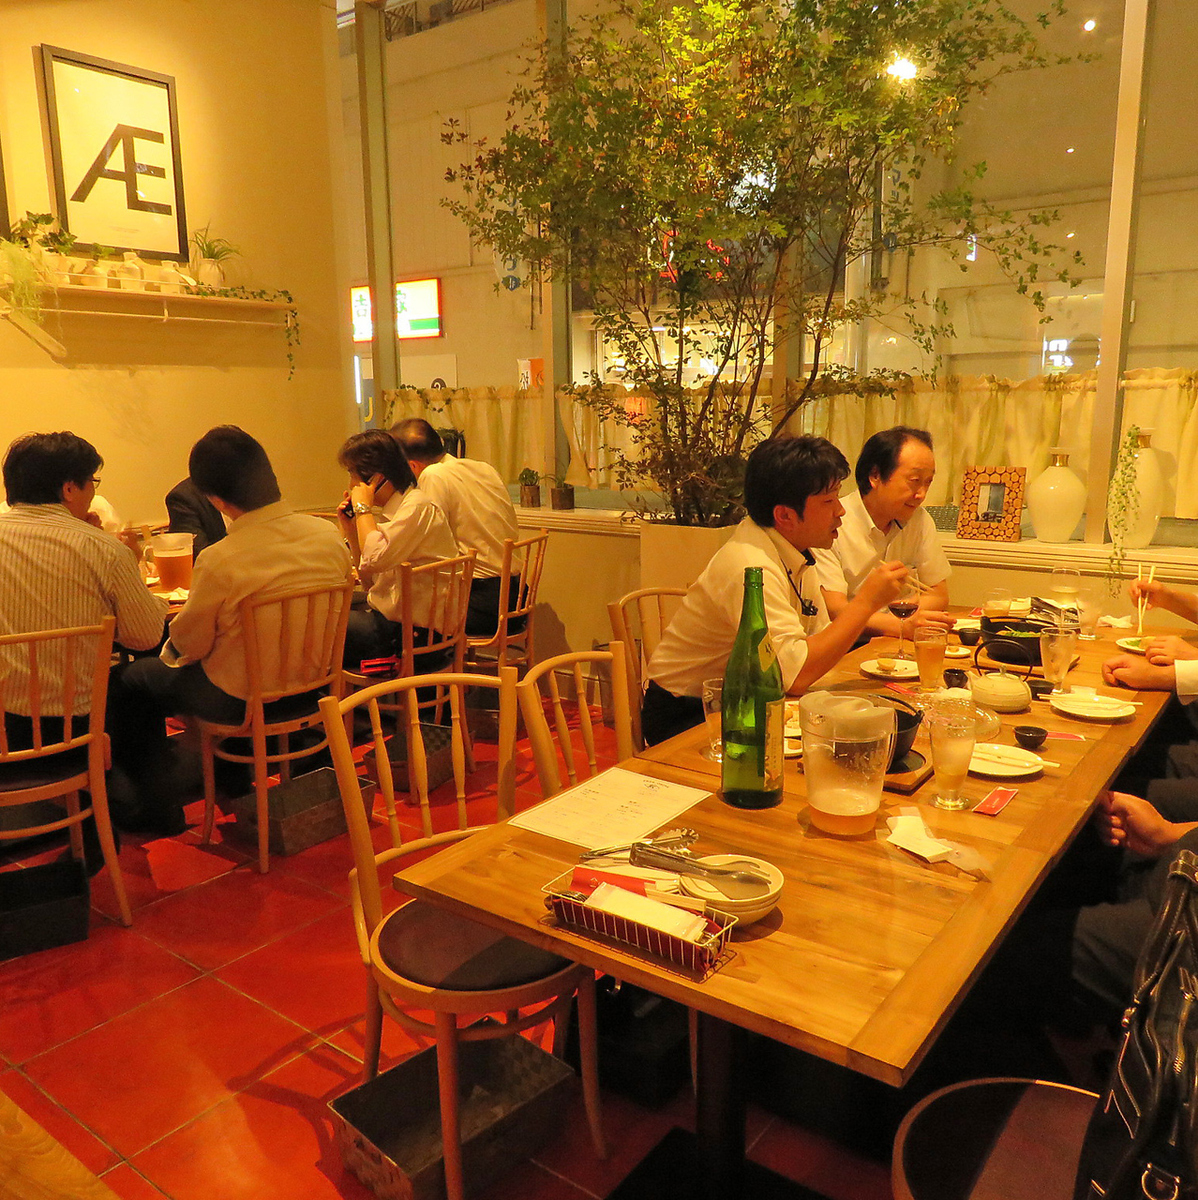 【Private room with 15 to 25 people available】 Although it is usually a table seat, you can use private room according to the number of guests.There is a feeling of liberty at the seat of the window here, the story will also be exciting Enjoy the mistake Pear! Spend a pleasant moment in the fashionable atmosphere of the interior.We will do maximum hospitality so that we can meet your request of the secretary!